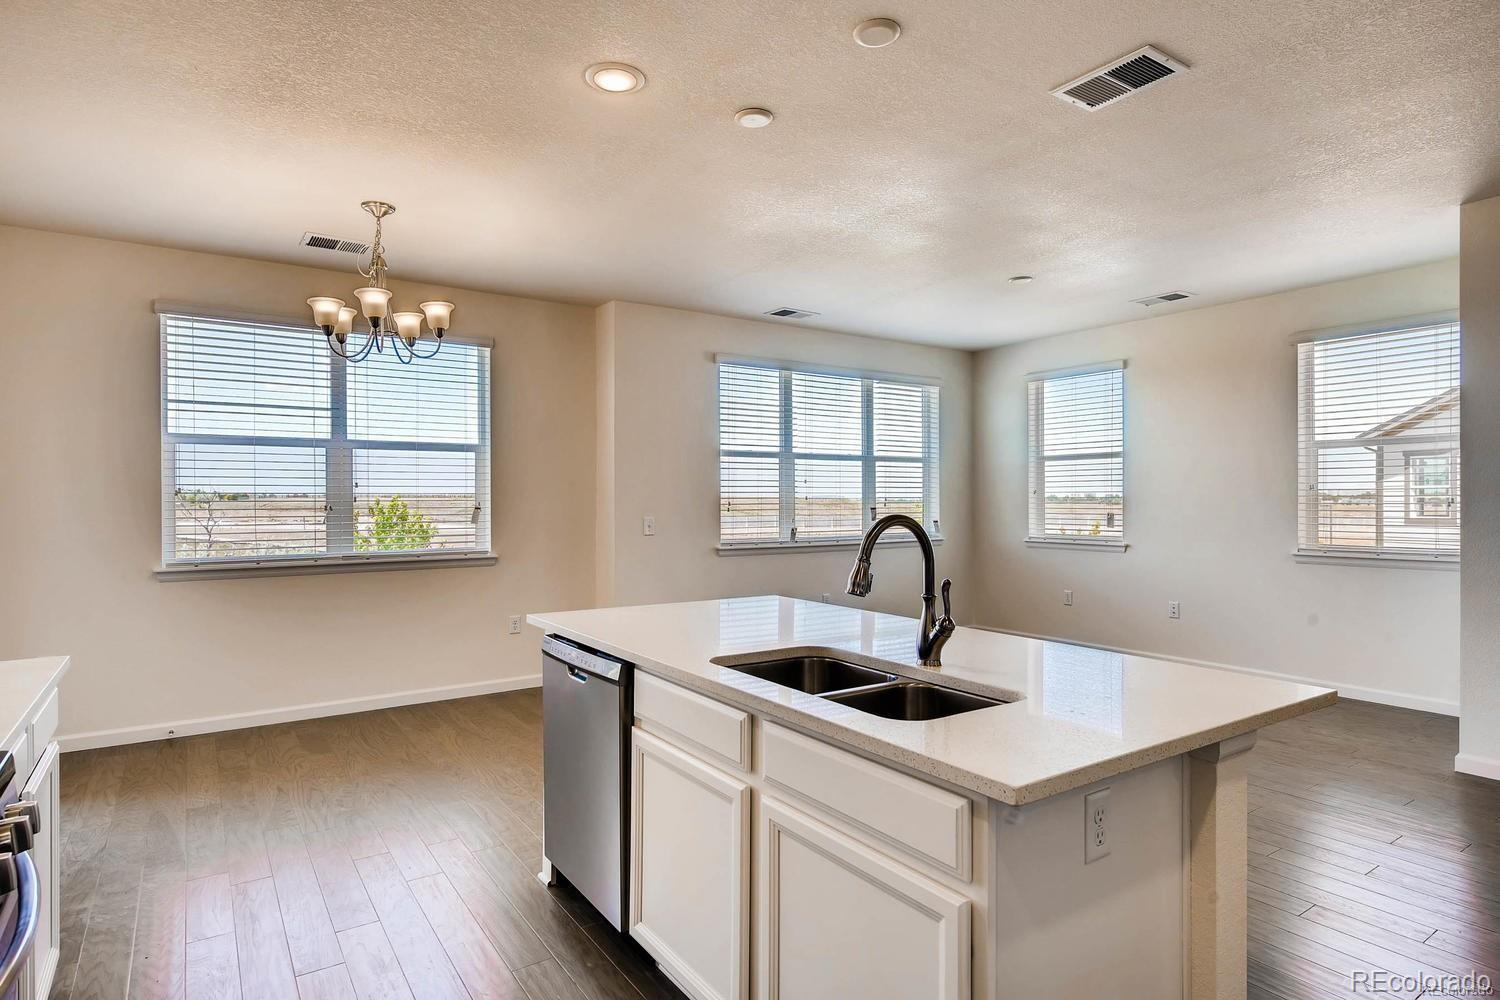 """Stunning 2 bed/ 2 bath in Shadow Canyon on first floor (NO STAIRS). This end unit features an open & bright layout, beautiful white cabinetry, quartz counters throughout, full tile back splash in kitchen & extensive hardwood flooring. The oversized kitchen boasts SS appliances including 5 burner gas range, 42"""" cabinets w/ crown molding & huge kitchen island w/ room for seating. Both Bedrooms are Incredibly spacious and 2 full bathrooms with washer/dryer included. Enjoy the community pool/hot tub, fitness center and club house, just minutes from the unit. 1 Car Detached Garage and reserved parking spot included! Ideally located within walking distance to schools, shopping and restaurants. Book your showing today!"""